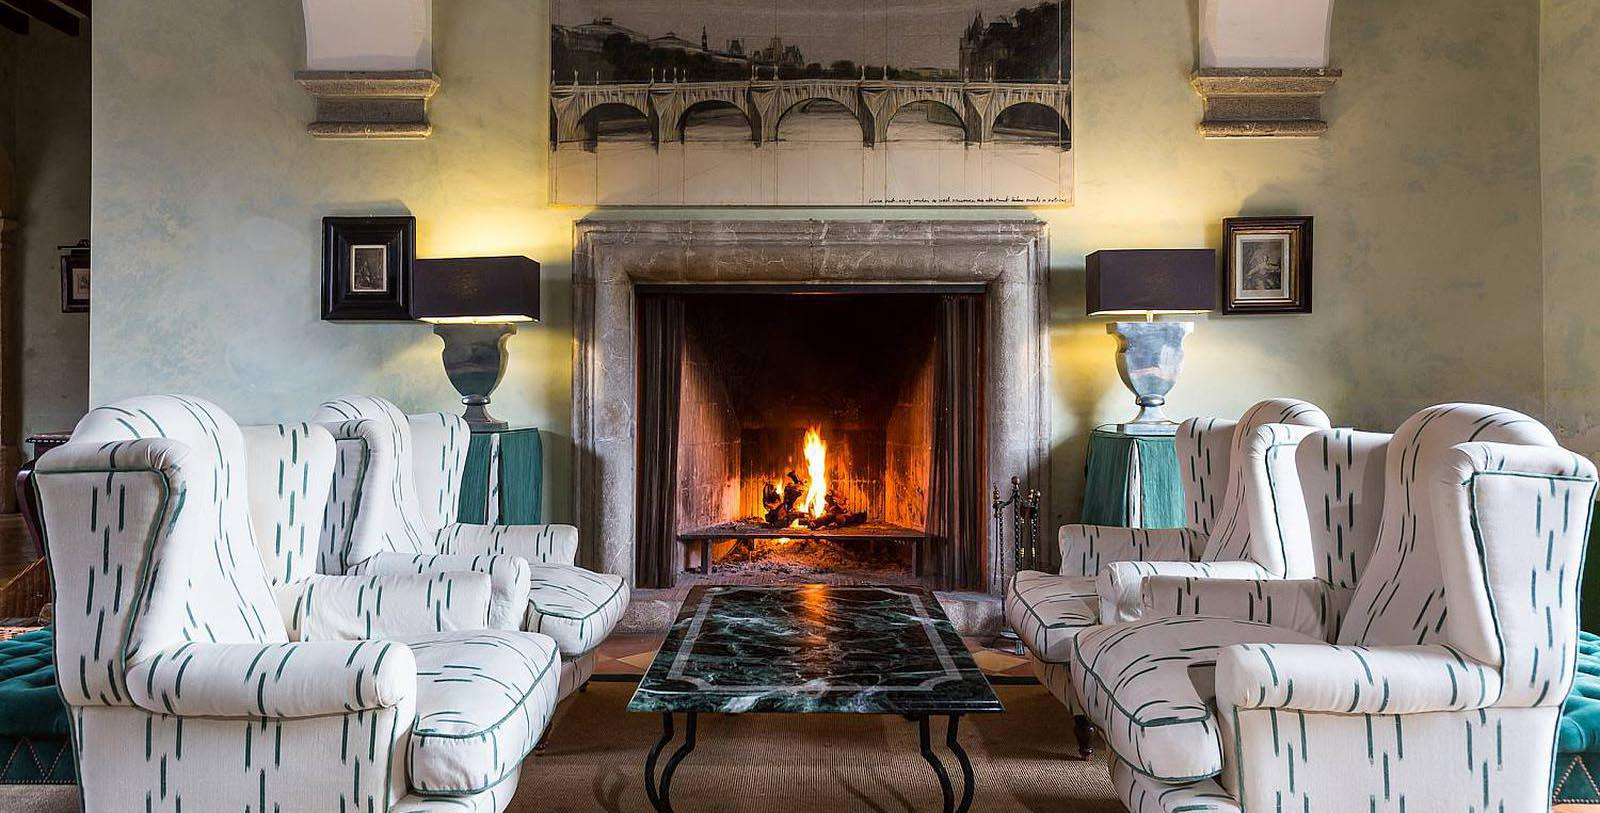 Image of Lobby Fireplace, Gran Hotel Son Net, Puigpunyent, Spain, 1672, Member of Historic Hotels Worldwide, Discover